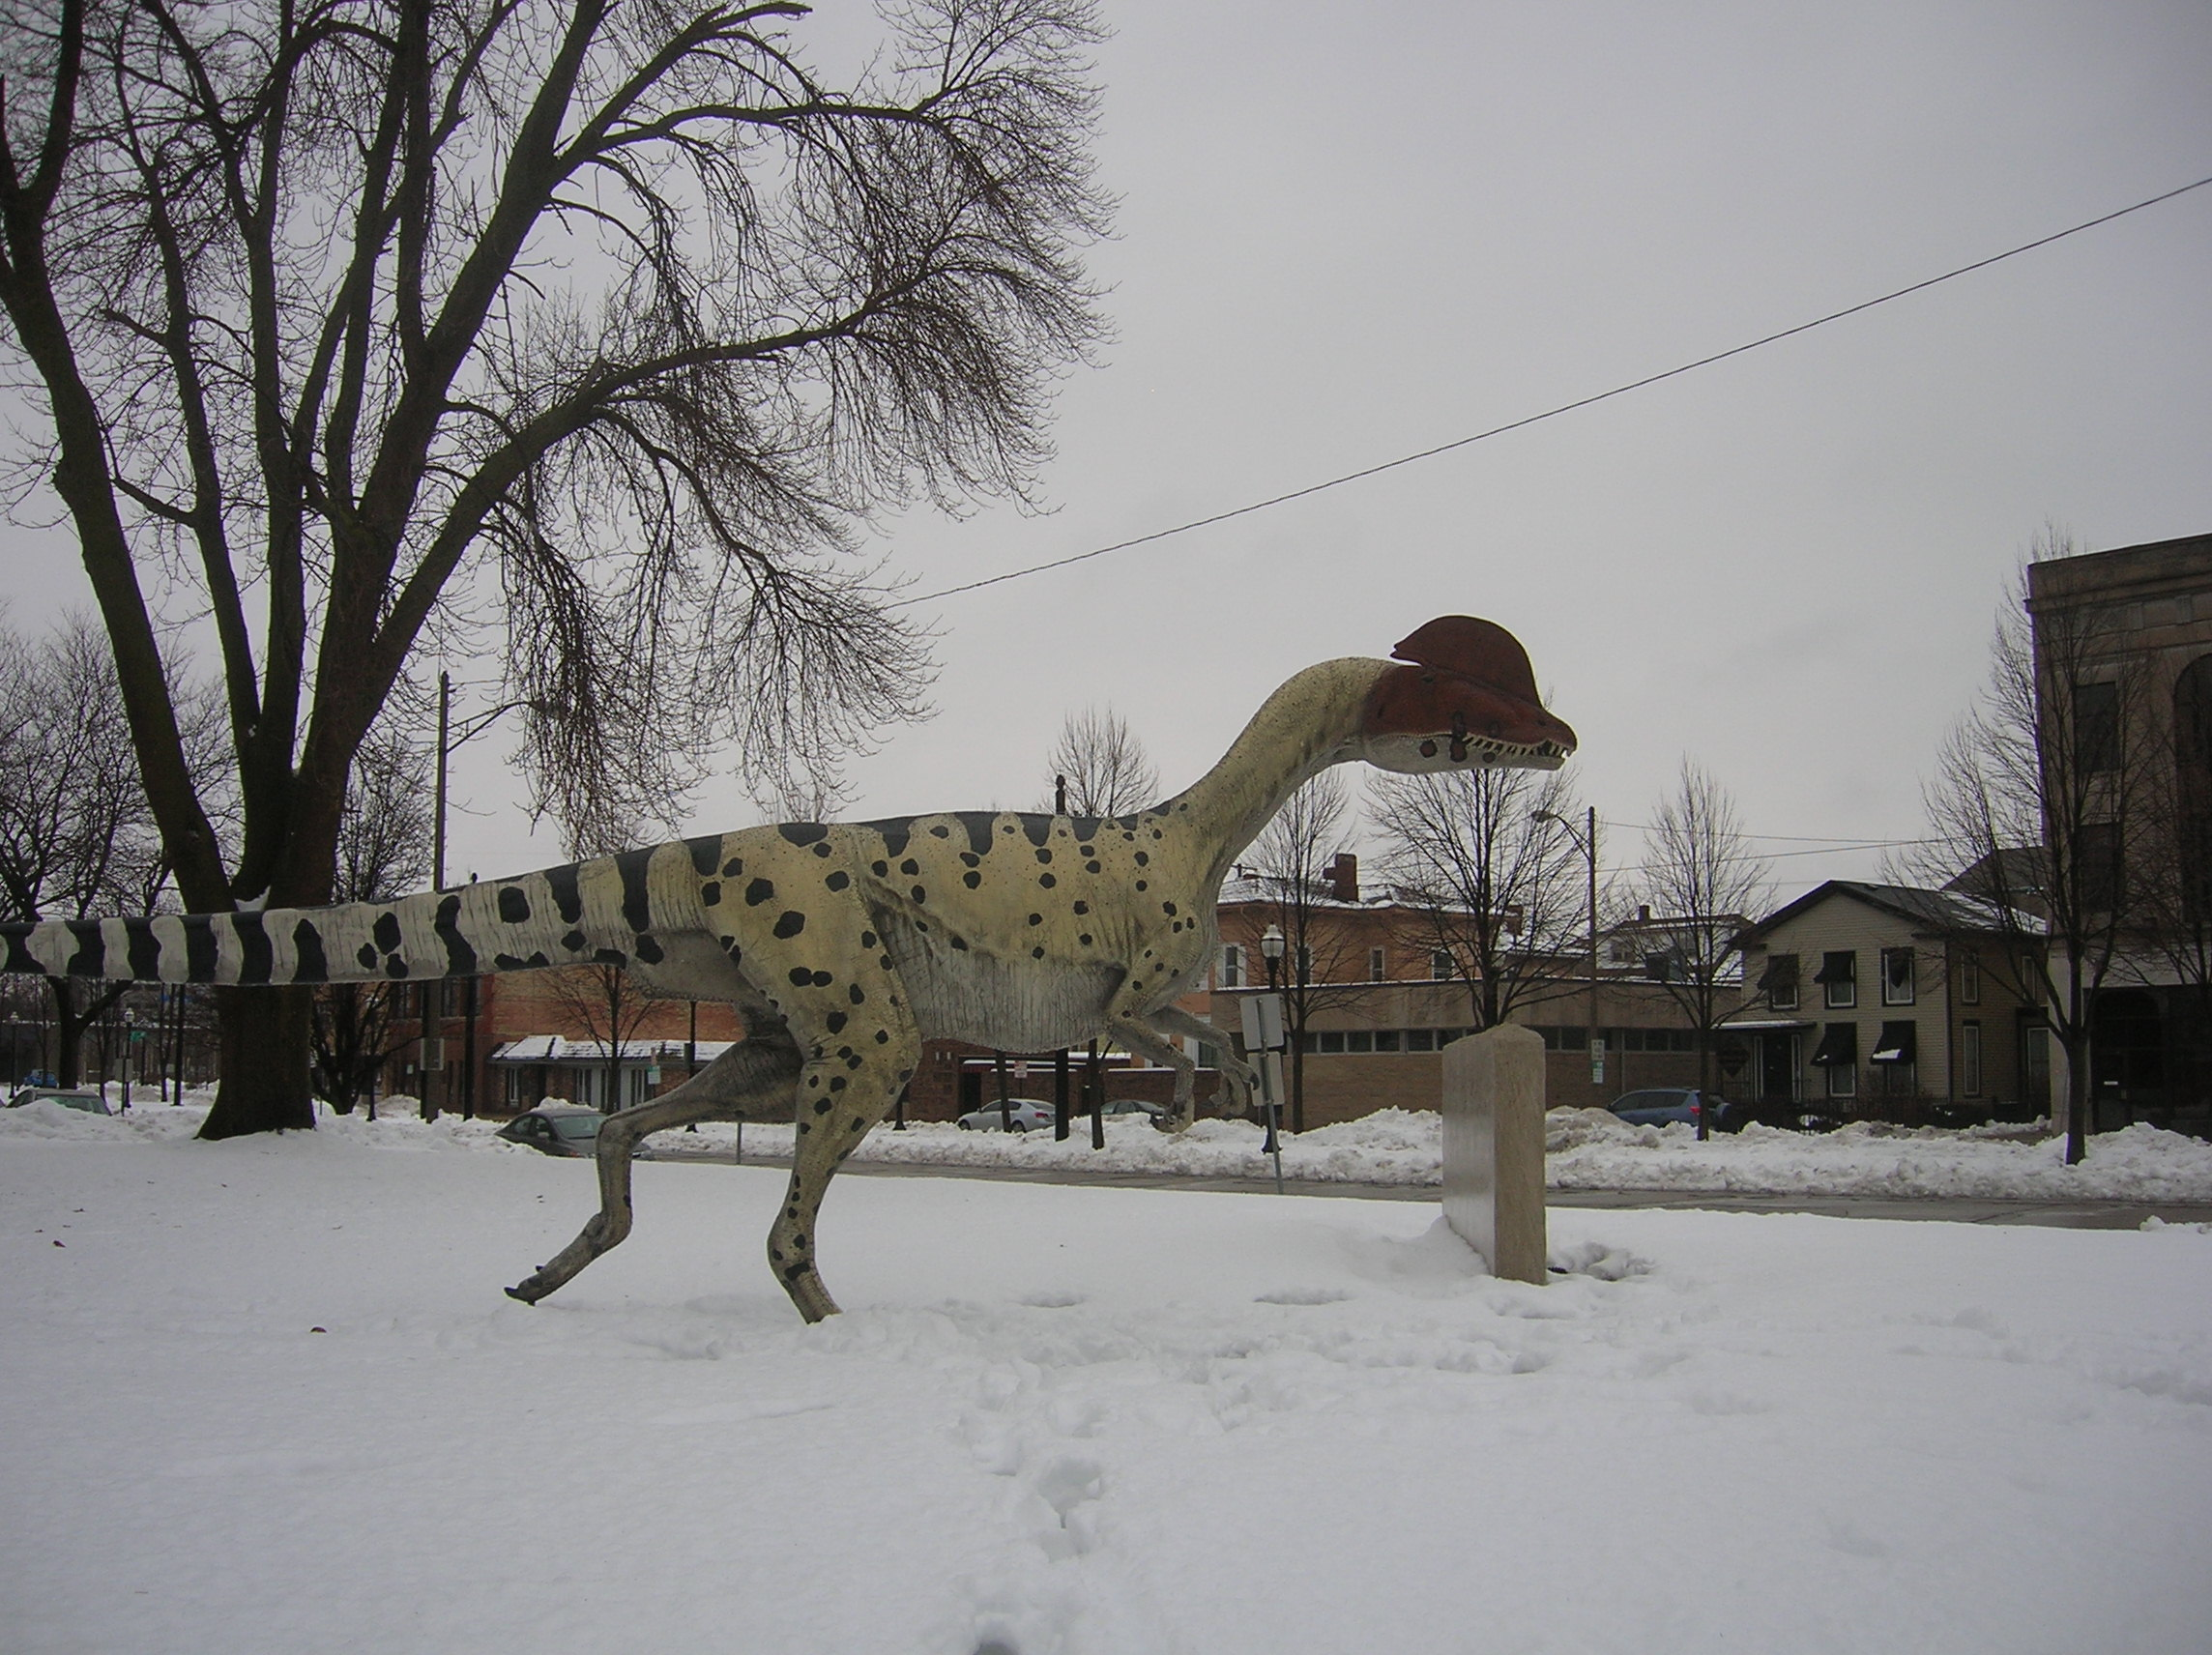 A dinosaur dashes to its car after participating in the Dinosaur Discovery Museum's Darwin Day festivities. Since it turns out that dinosaurs are warm-blooded, the snow was not actually a major problem for the dinosaurs.